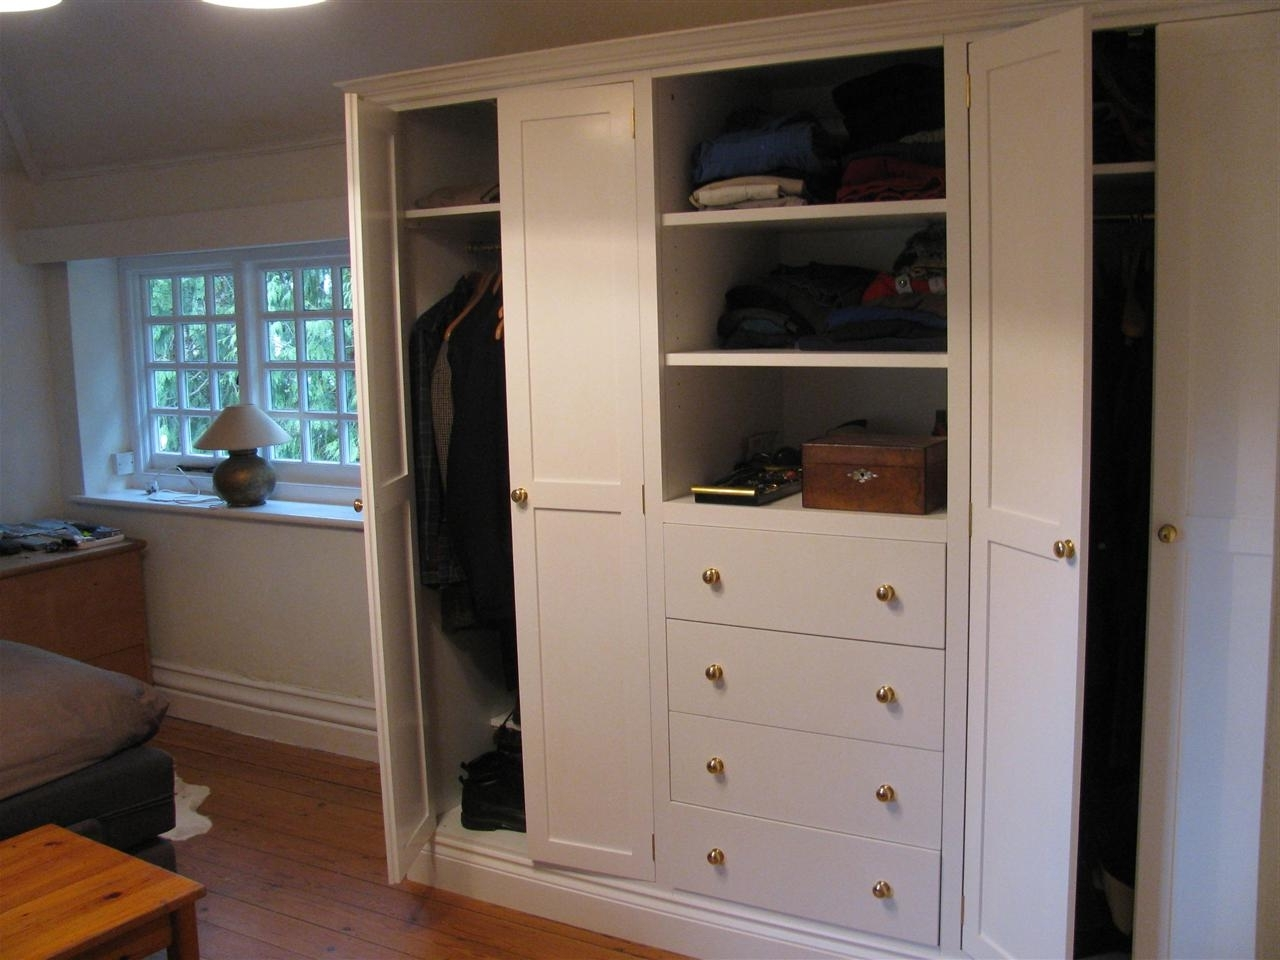 Popular Wardrobe Cabinet With Shelves Drawers And One Door Single Throughout Wardrobes With Drawers And Shelves (View 8 of 15)